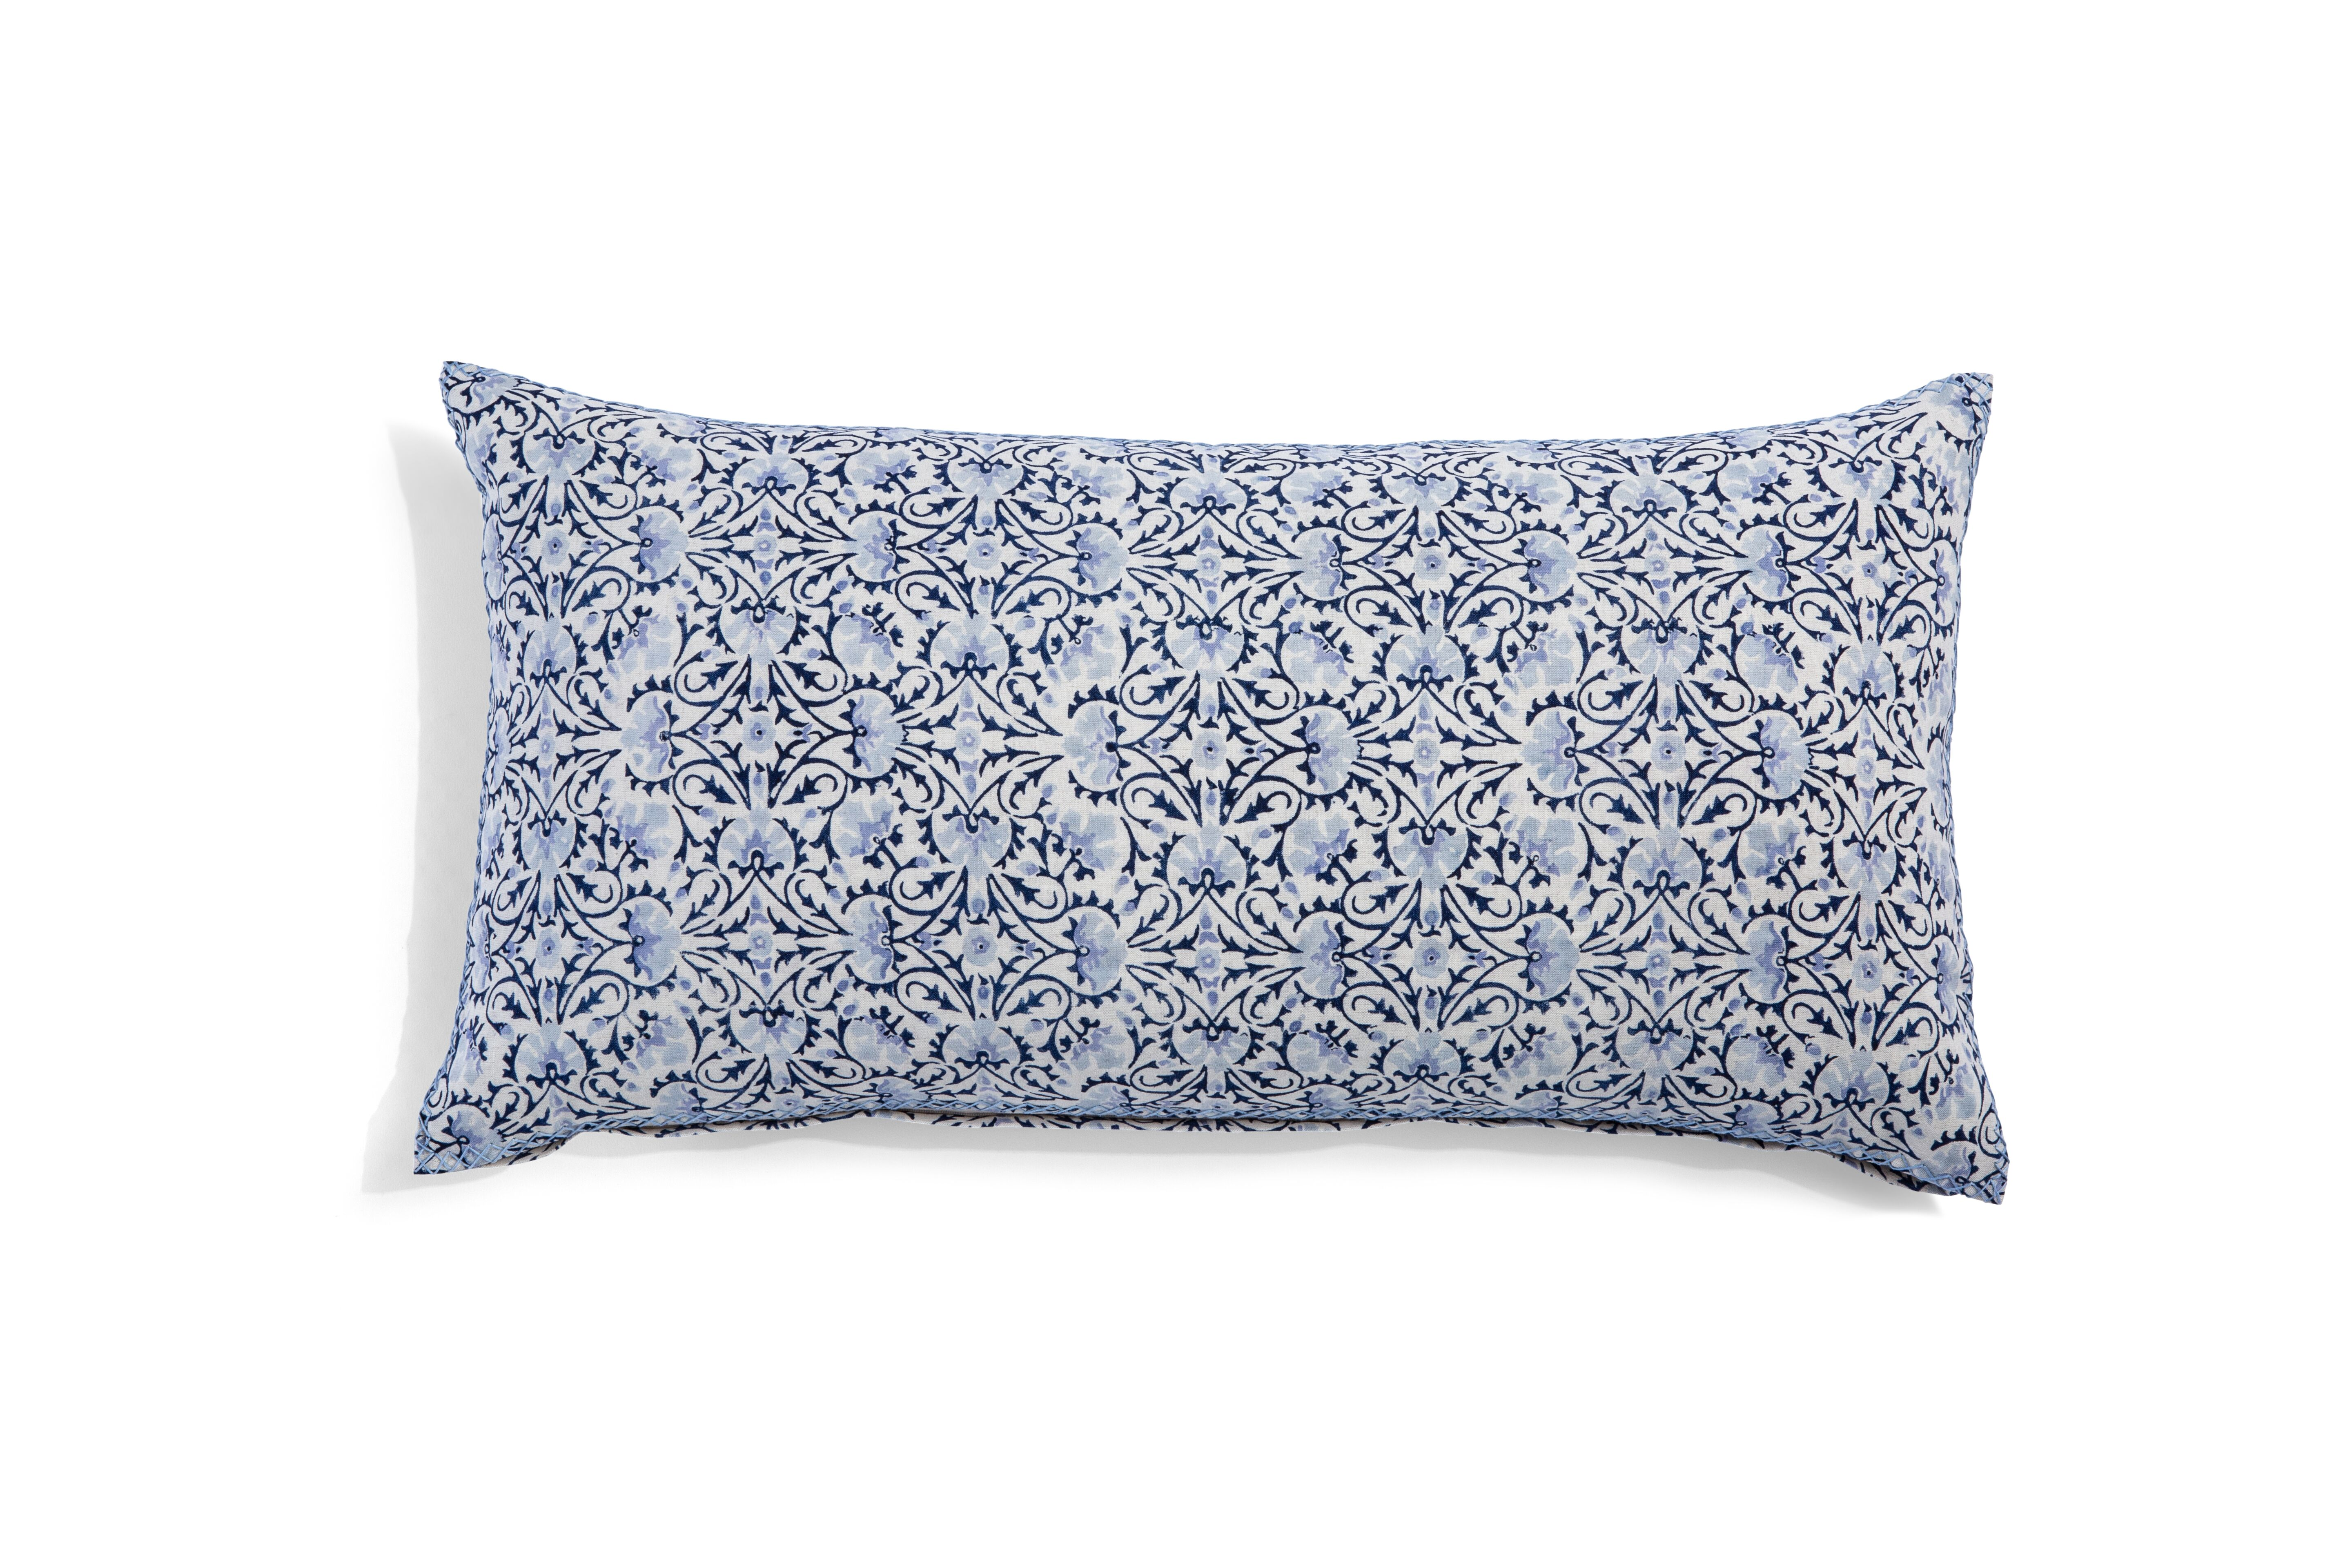 long pillow with blue swirl design